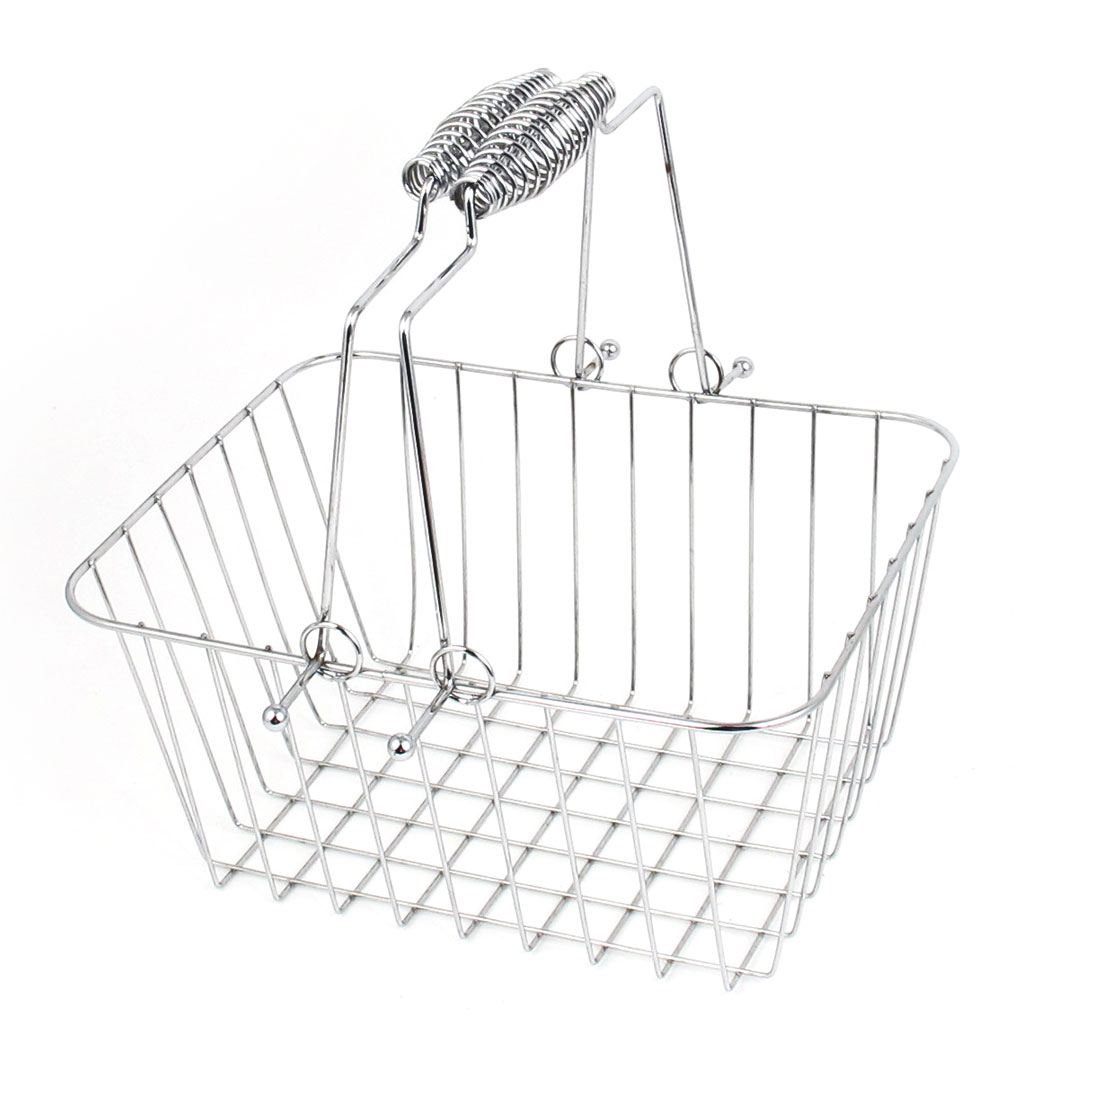 Silver Tone Metal Rectangular Wire Storage Basket Organizer Holder Container w Handle